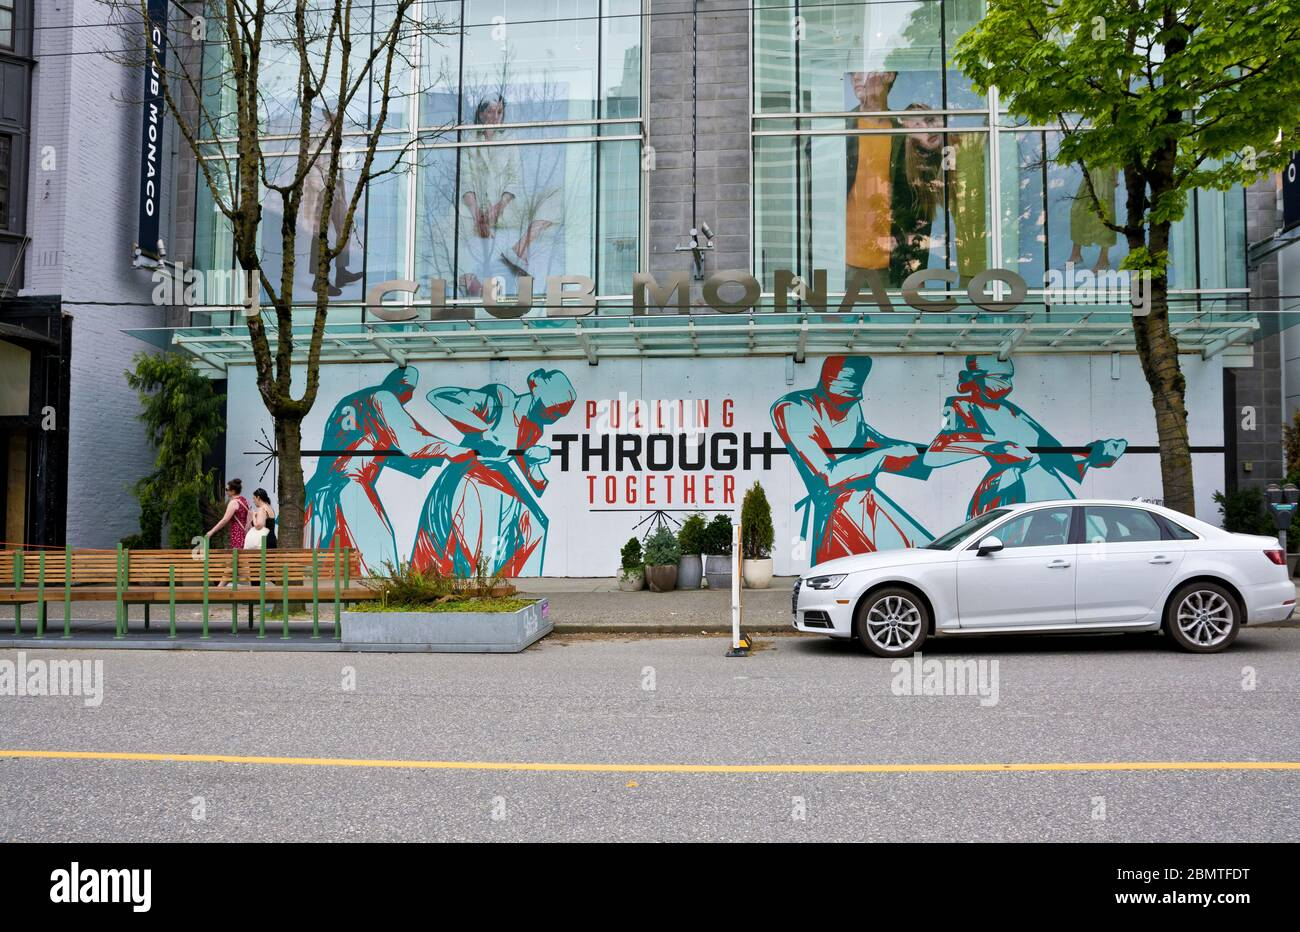 vancouver-bc-may-9-2020-mural-on-a-boarded-up-store-on-robson-street-with-a-positive-message-pulling-through-together-during-the-pandemic-2BMTFDT.jpg